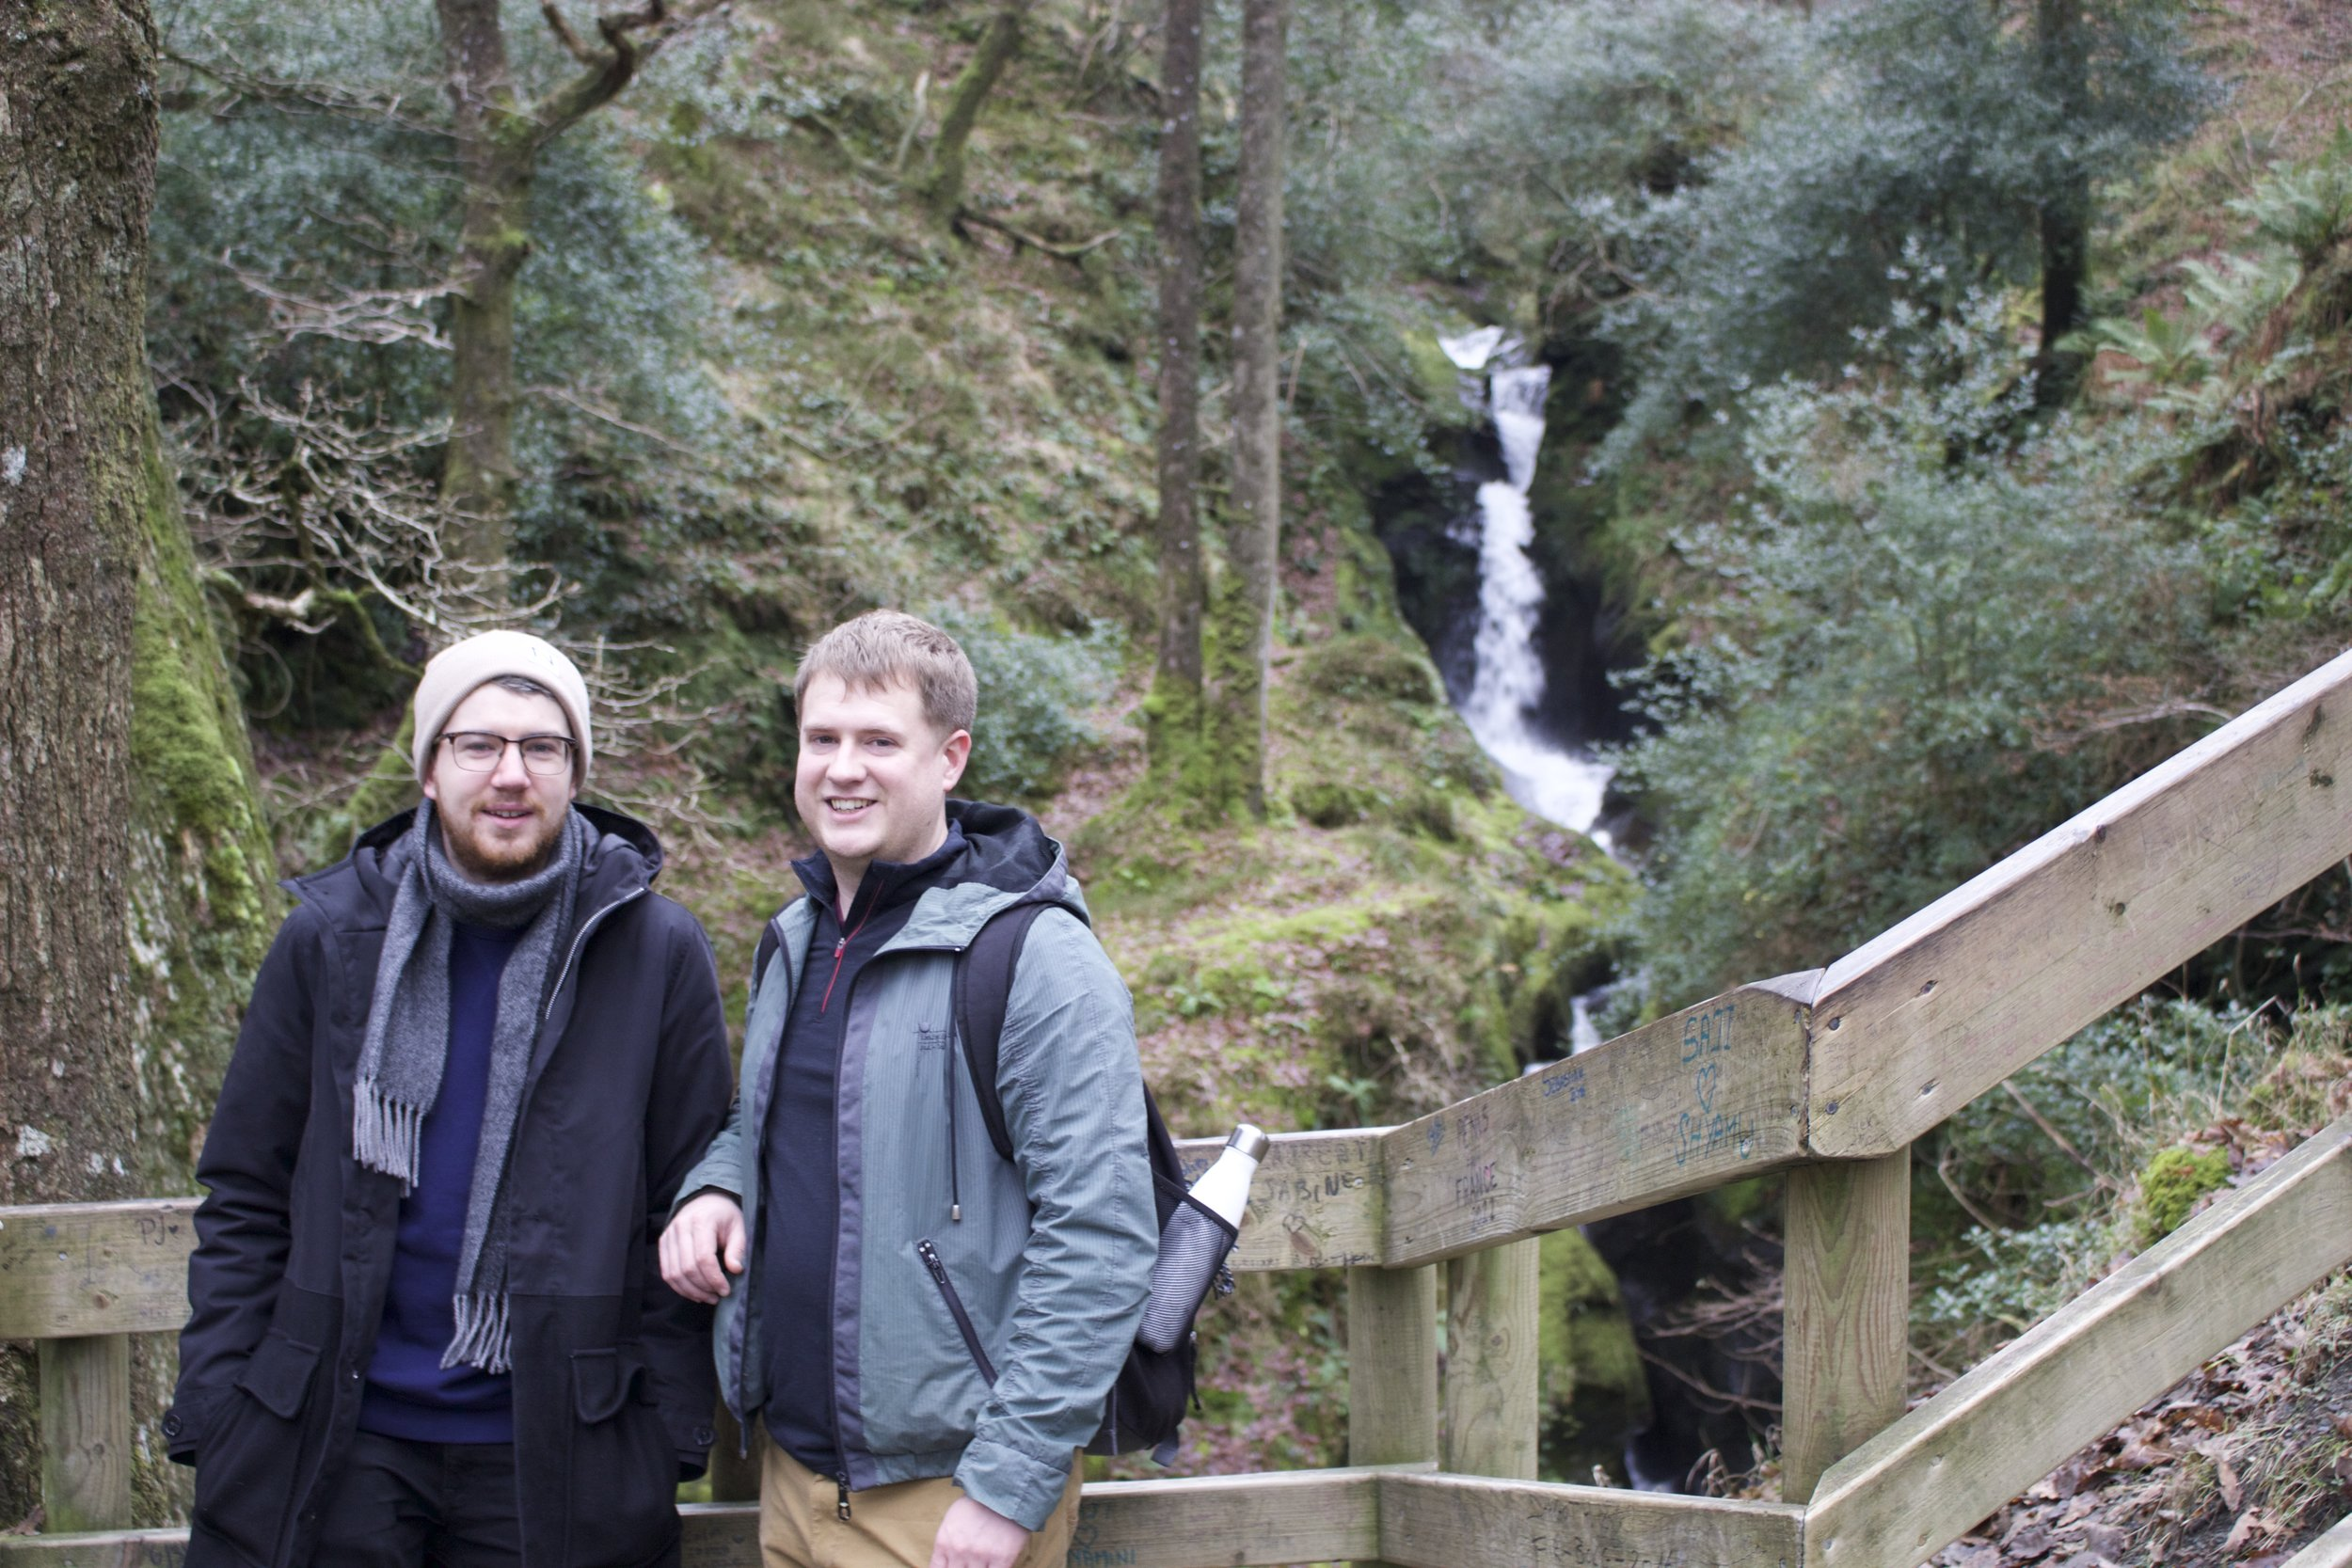 Dave and his friend James in front of the waterfall